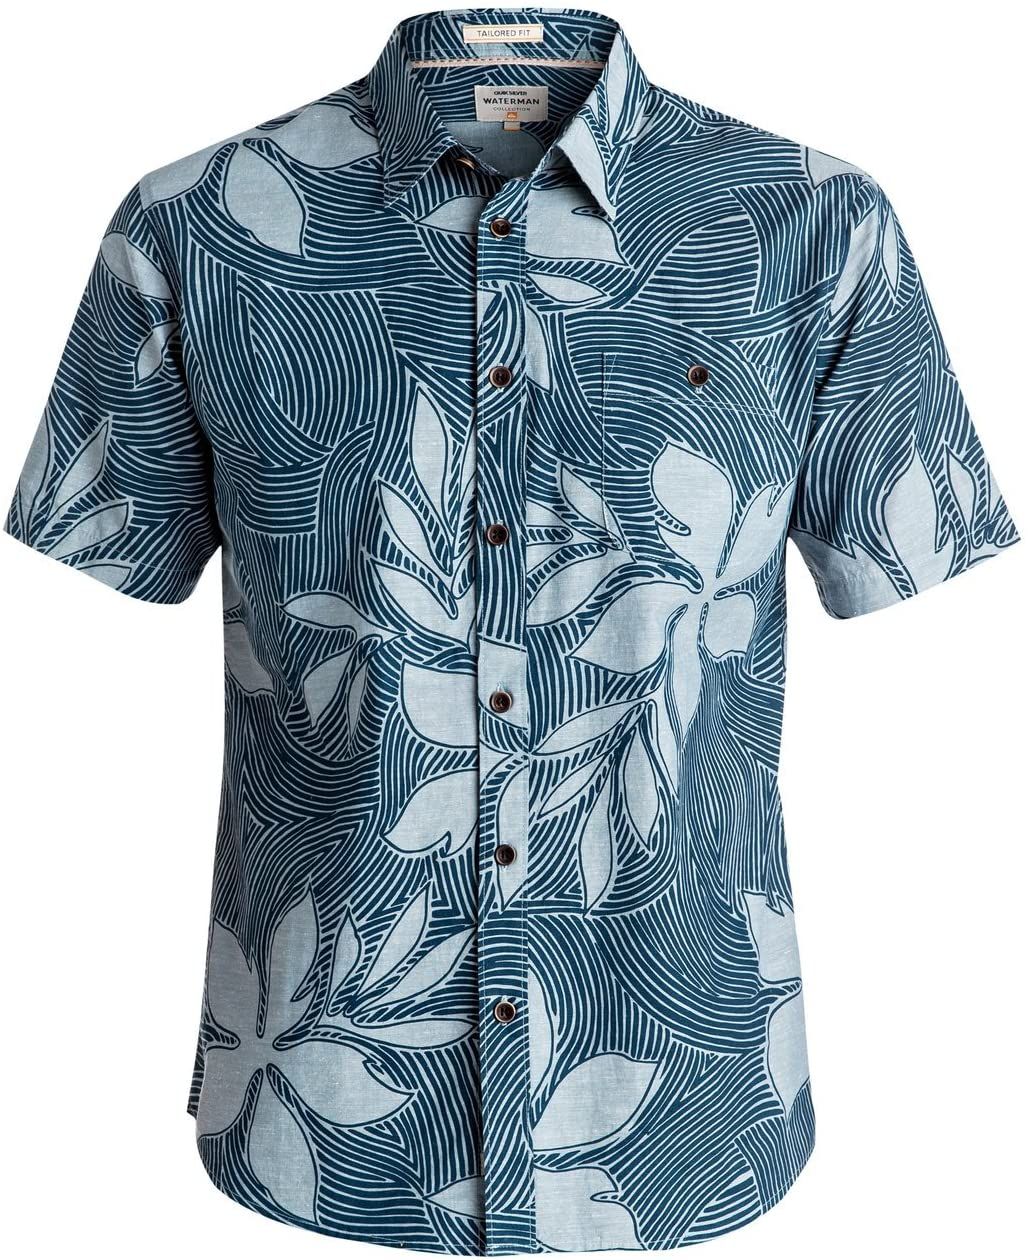 Quiksilver Mens Sunburst Button Up Short-Sleeve Shirt Small Provencial